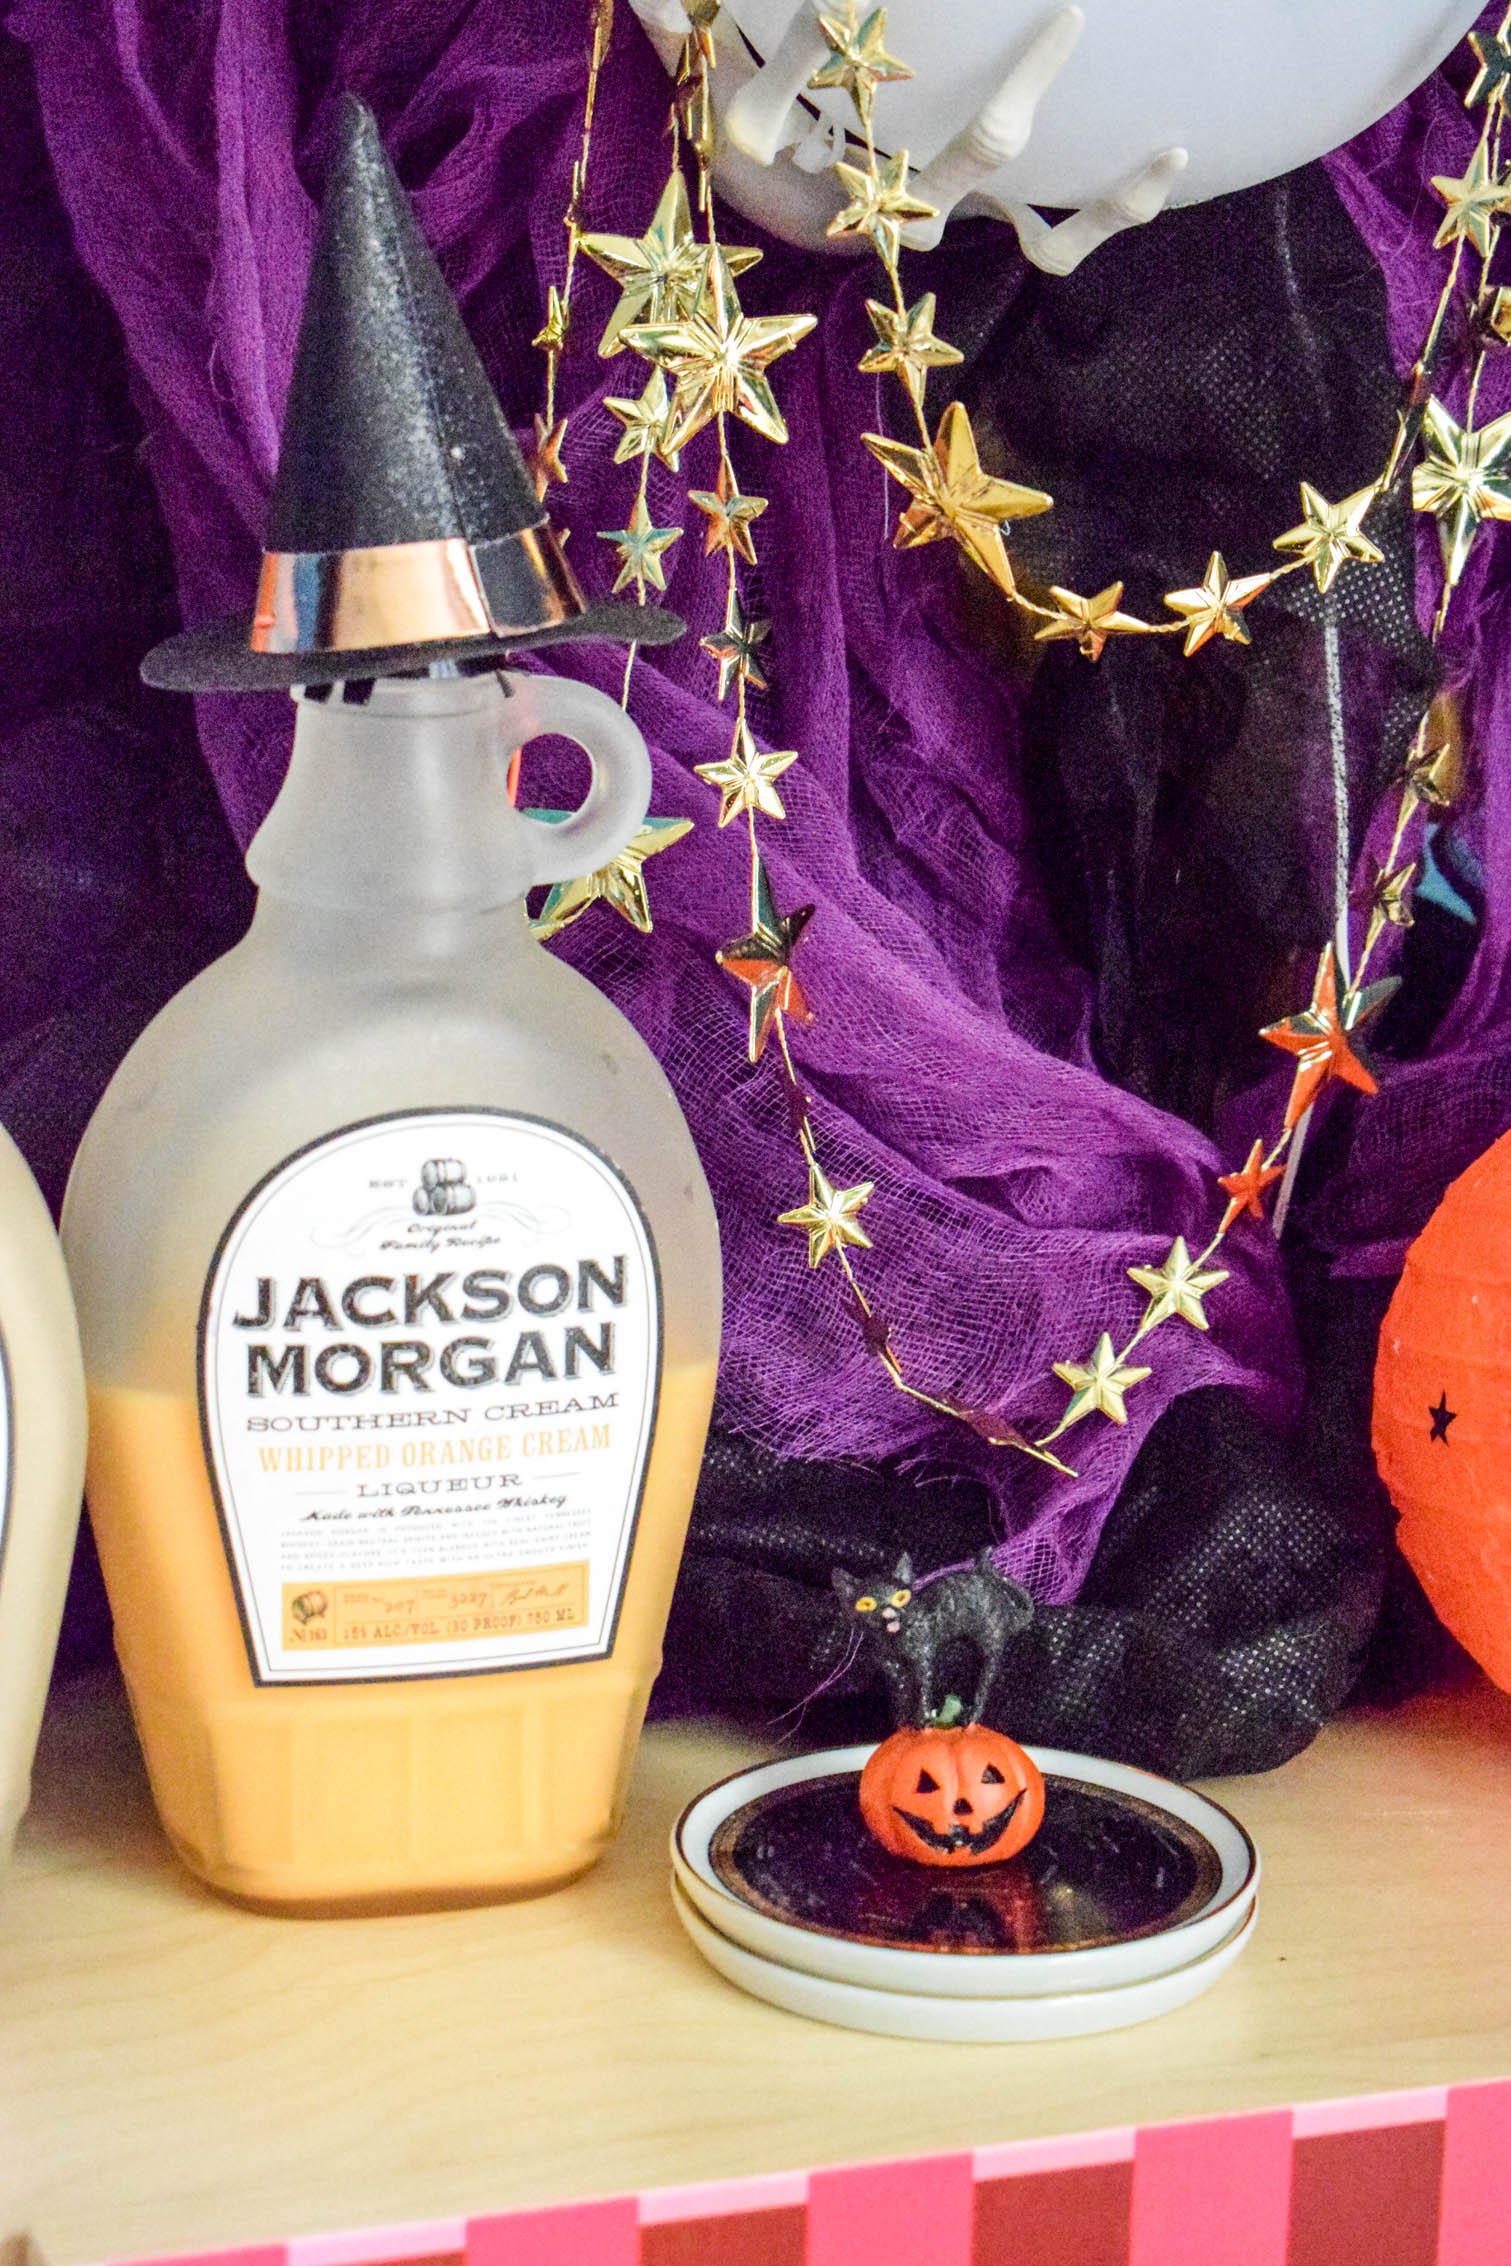 Halloween Home Decor for your bar is as easy as skeletons, Frankenstein and witches! Come see how Jackson Morgan makes the perfect base for each look, and grab some styling tips.